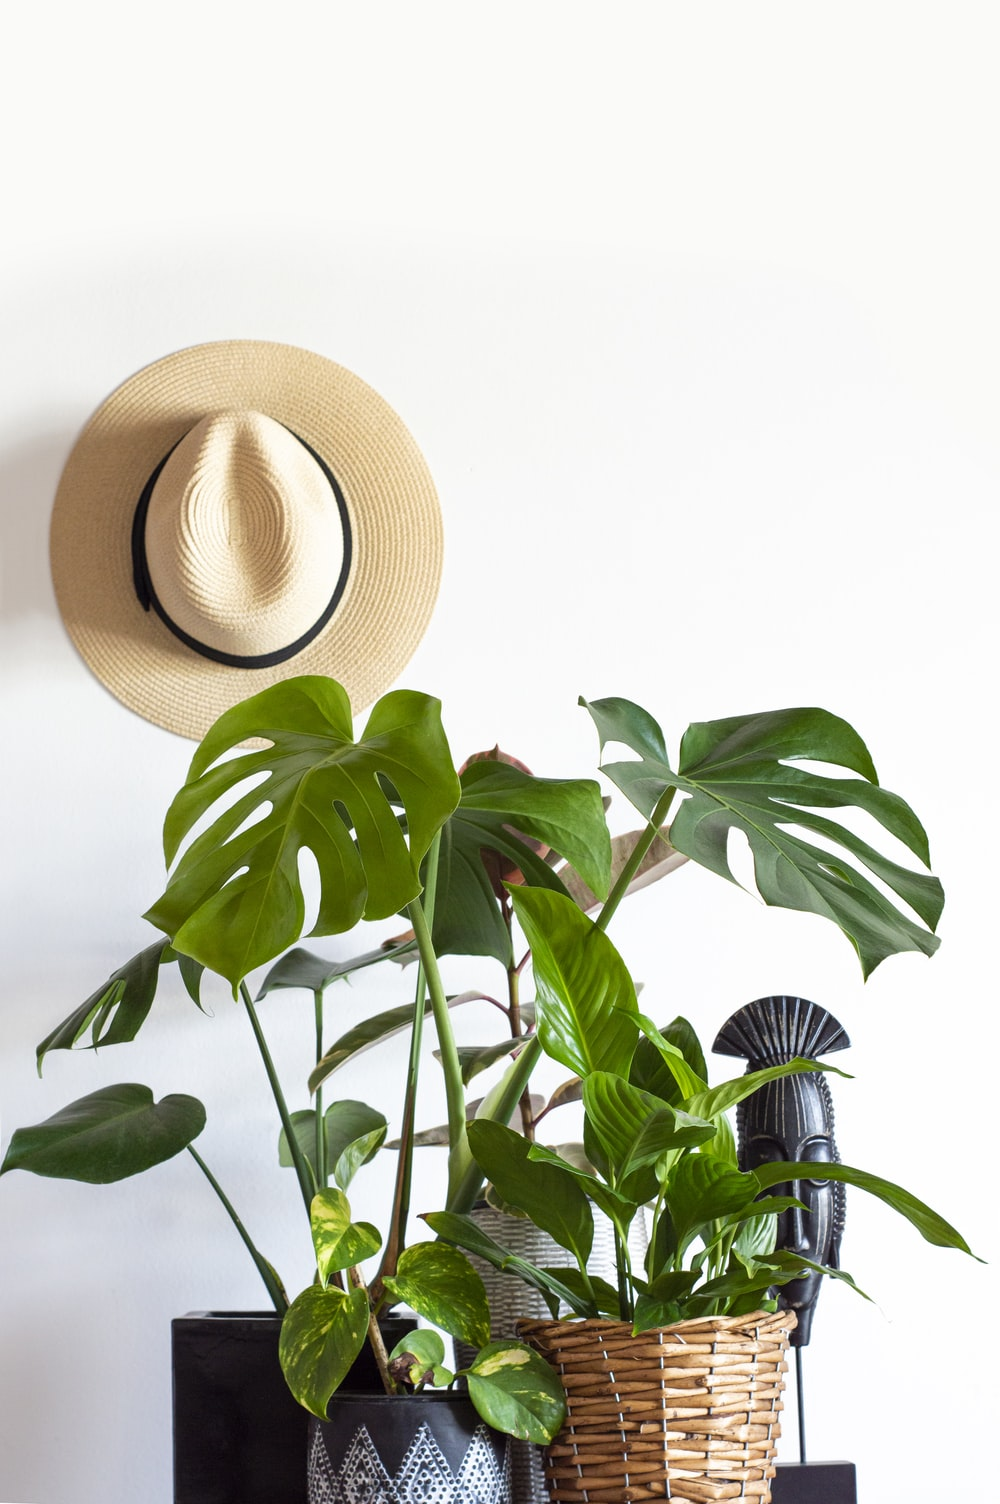 brown straw hat on green plant